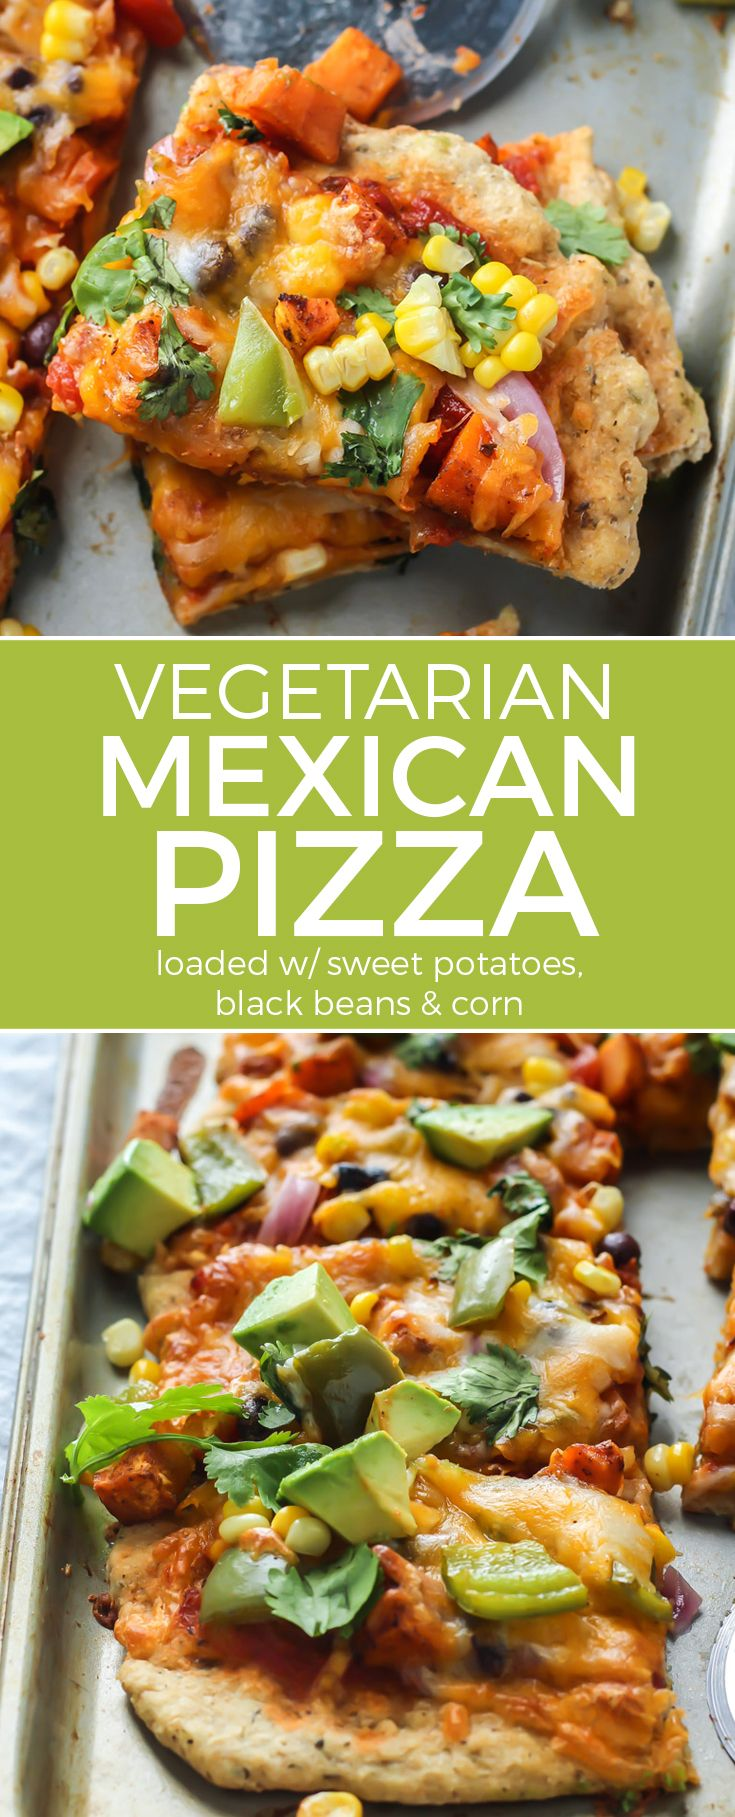 Sweet Potato Black Bean Mexican Pizza loaded with veggies and perfect for a fun dinner meal! ...My friends went crazy over this.